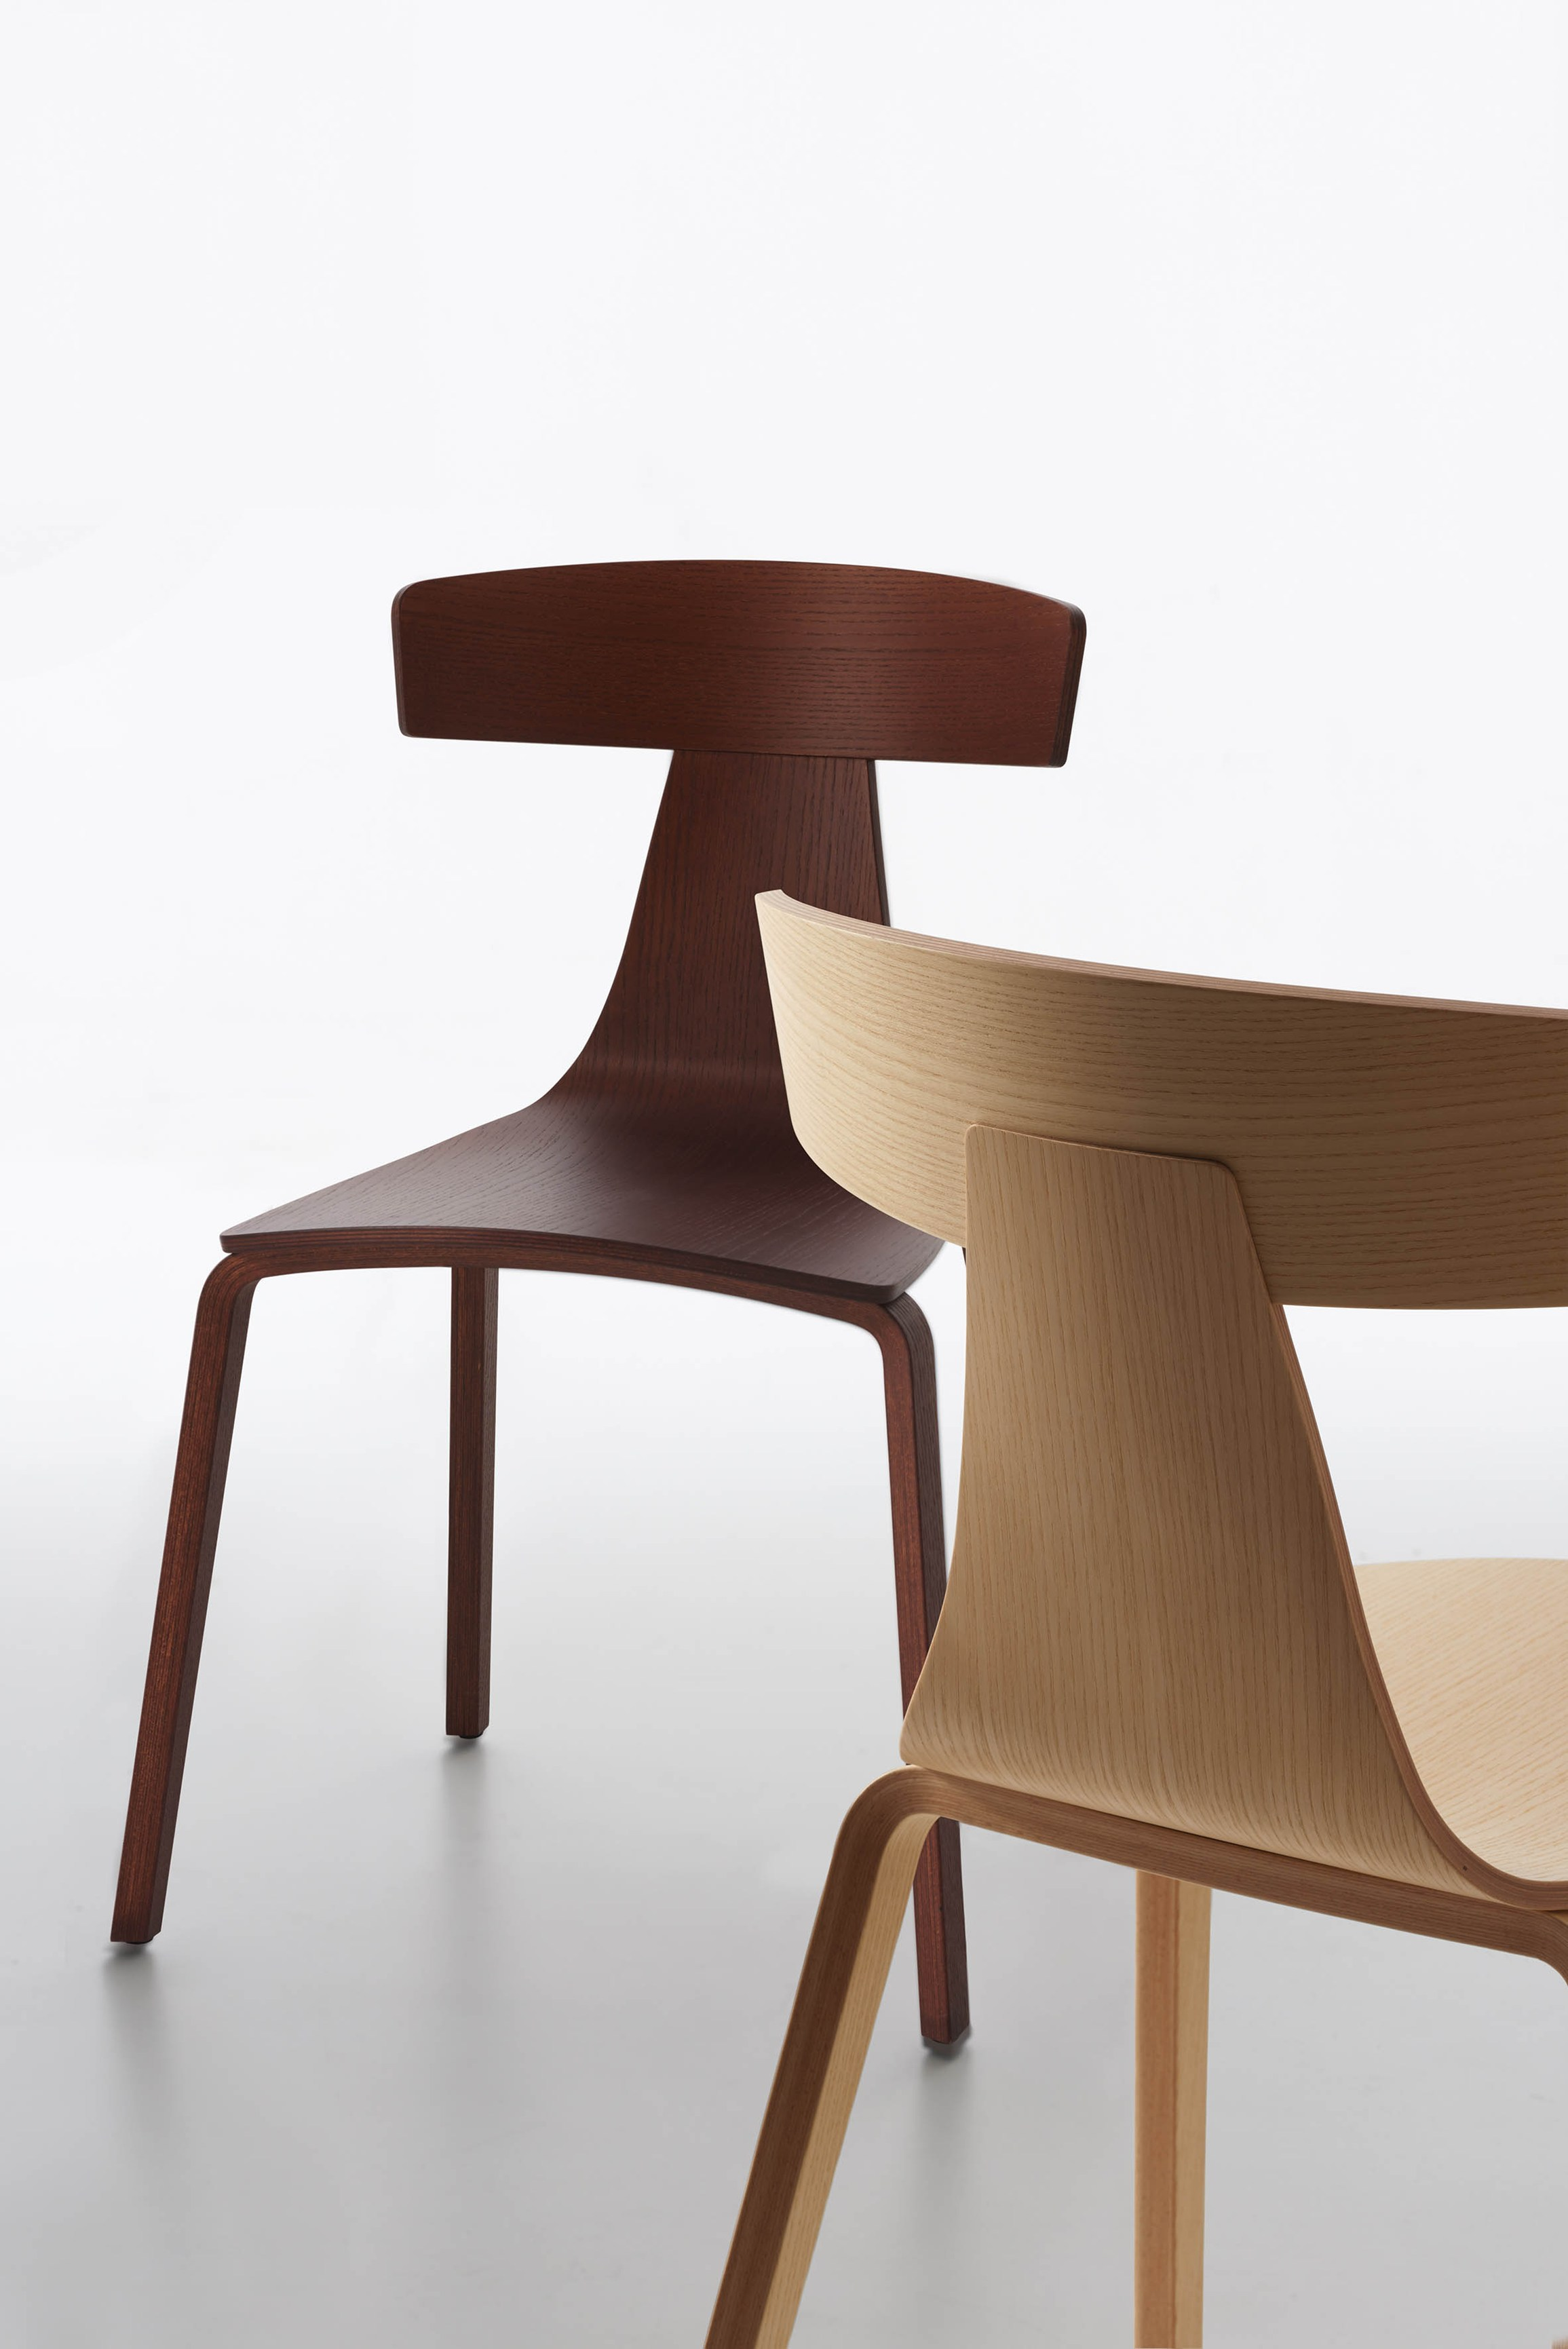 Plywood chair remo wood by plank design konstantin grcic